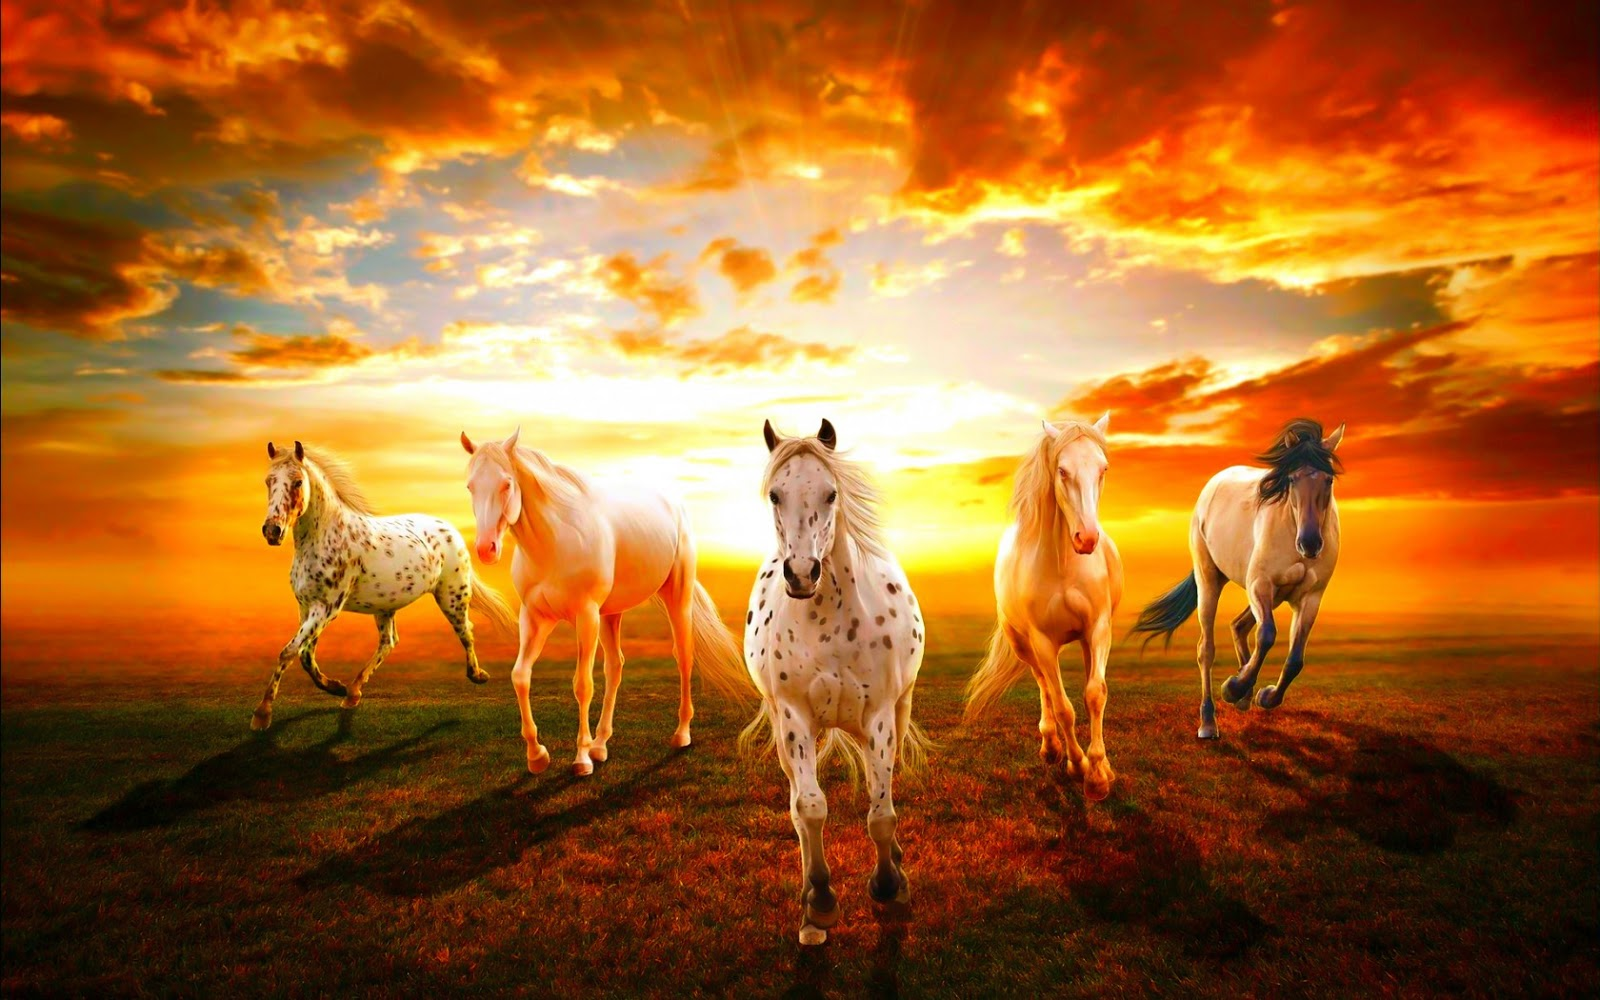 horse wallpapers for laptop - photo #32